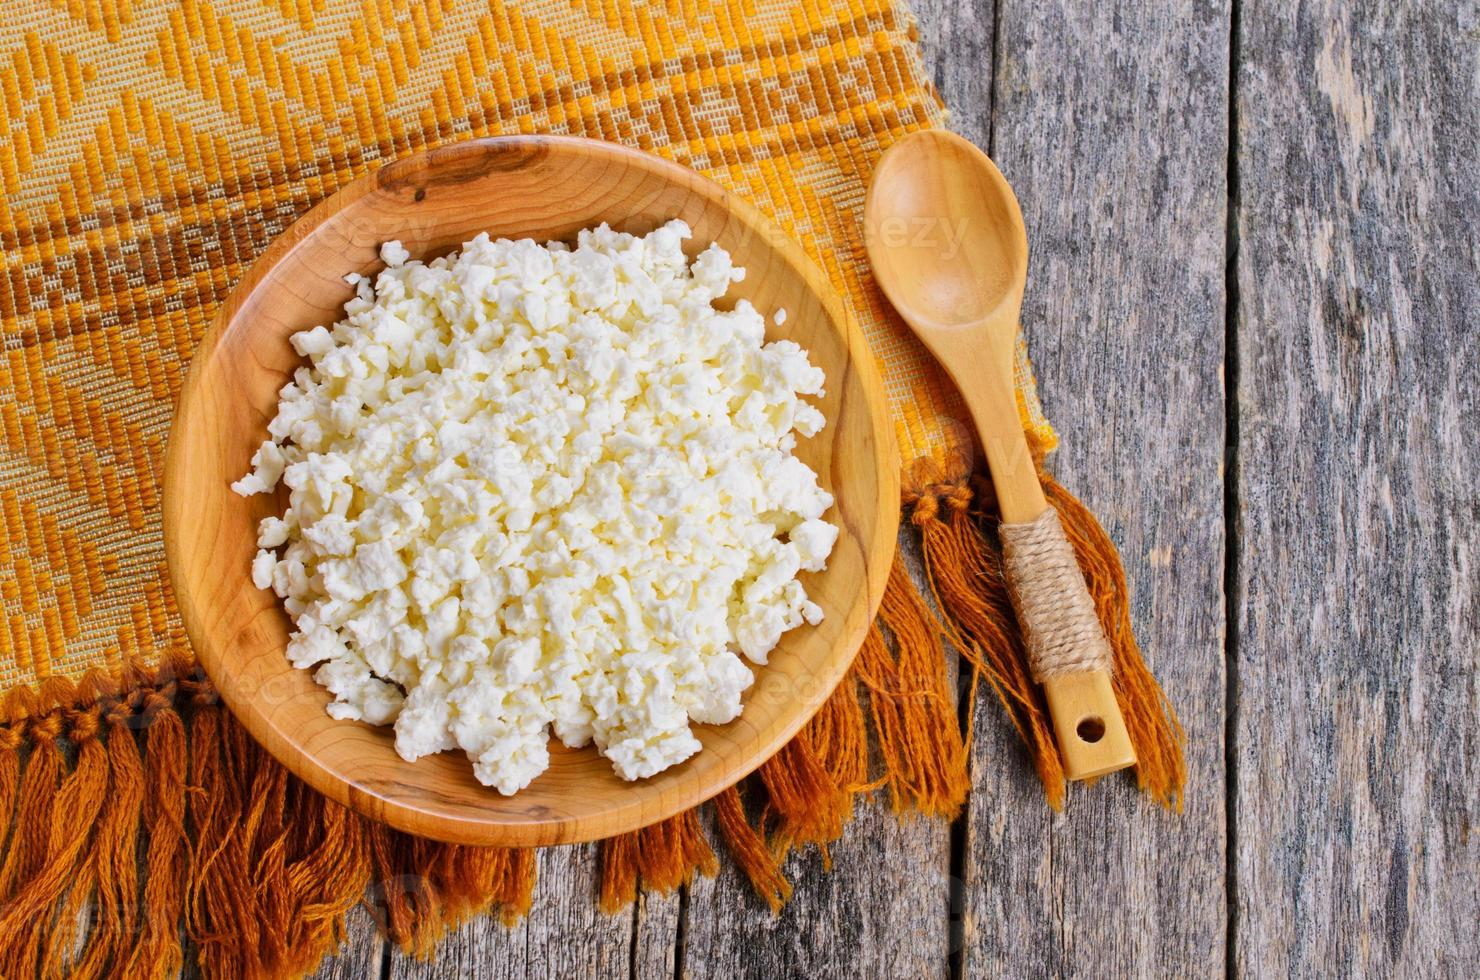 Cottage cheese photo